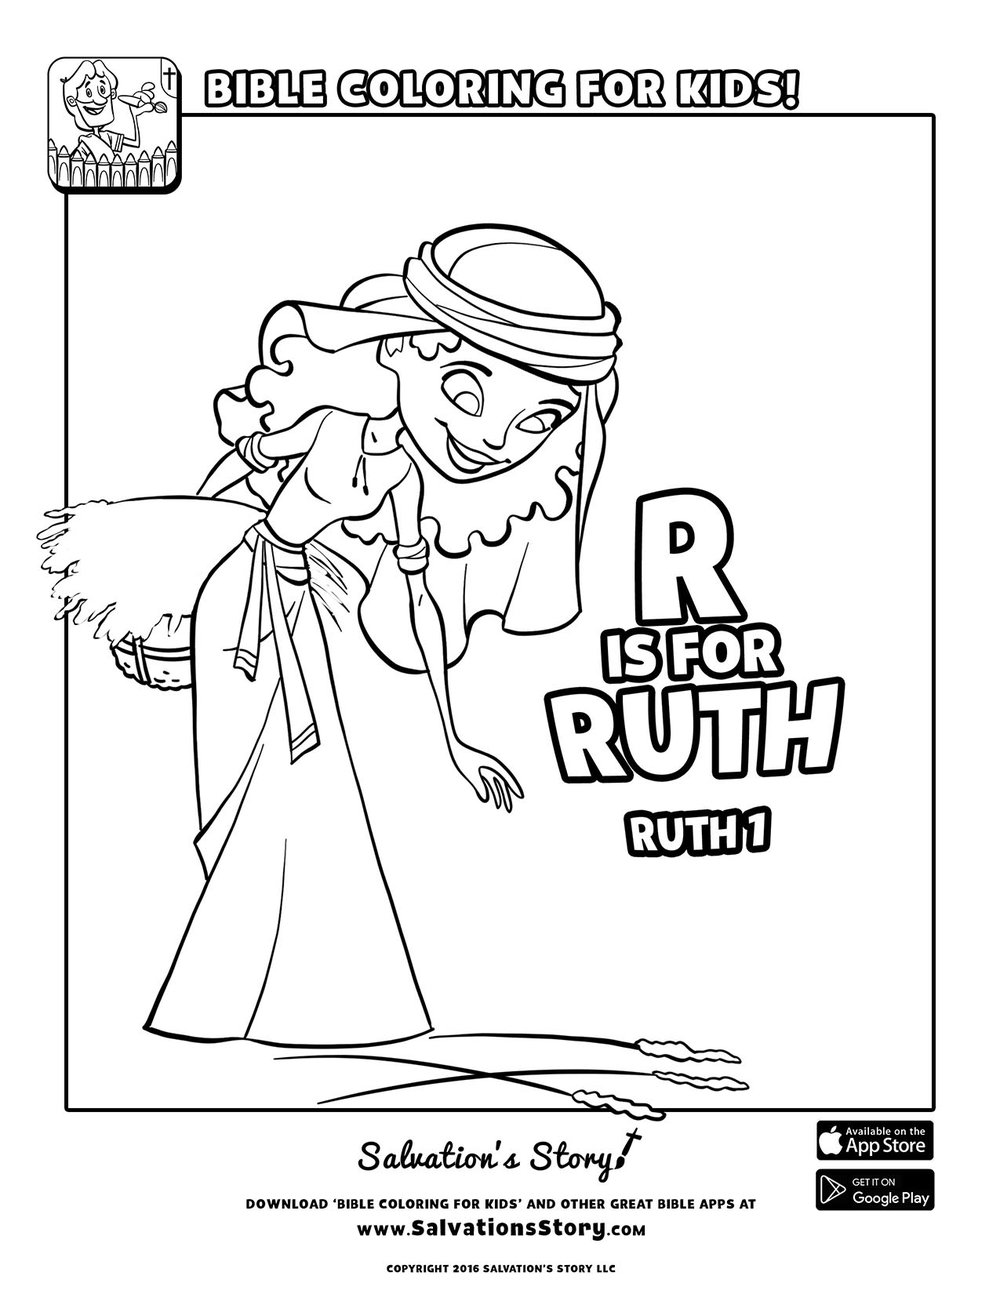 R is for Ruth.jpg